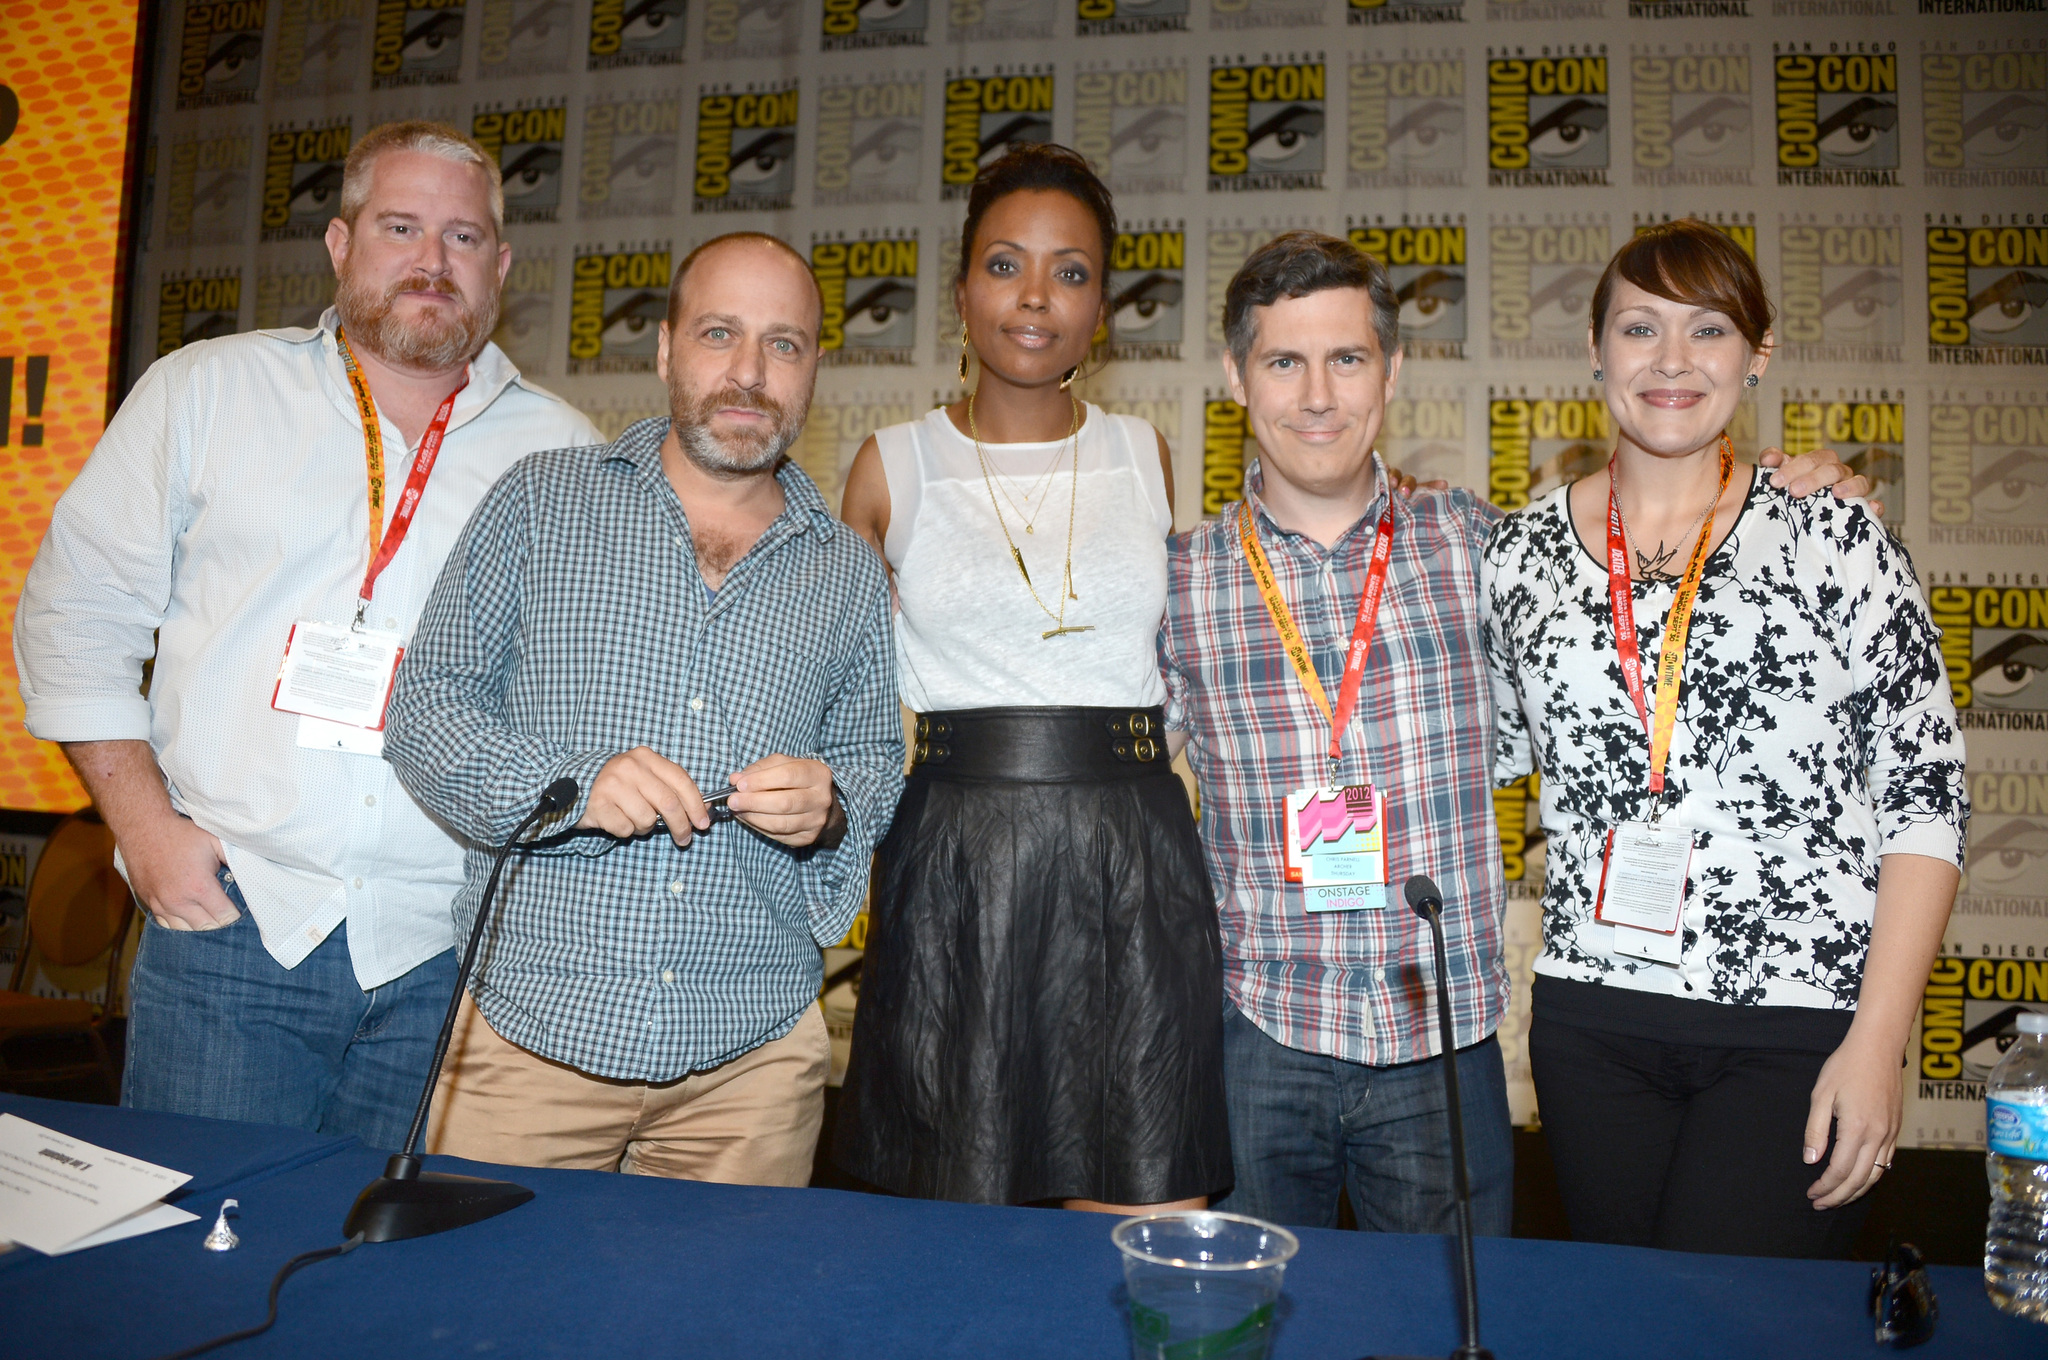 H. Jon Benjamin, Chris Parnell, Aisha Tyler, Adam Reed, and Amber Nash at an event for Archer (2009)